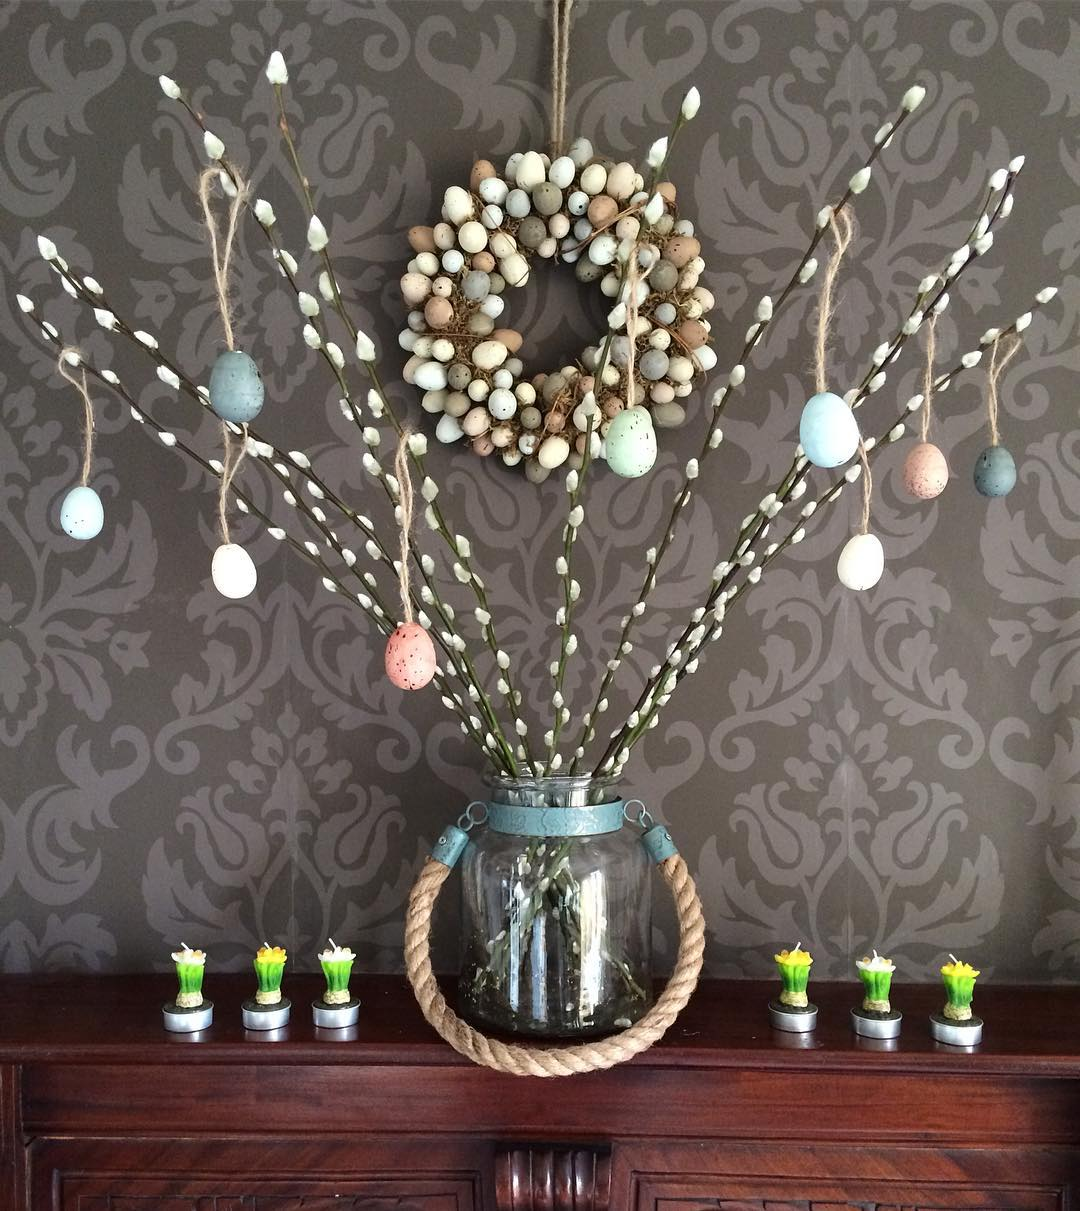 Appealing Easter Decor With Egg Garland And Tree In Glass Vase